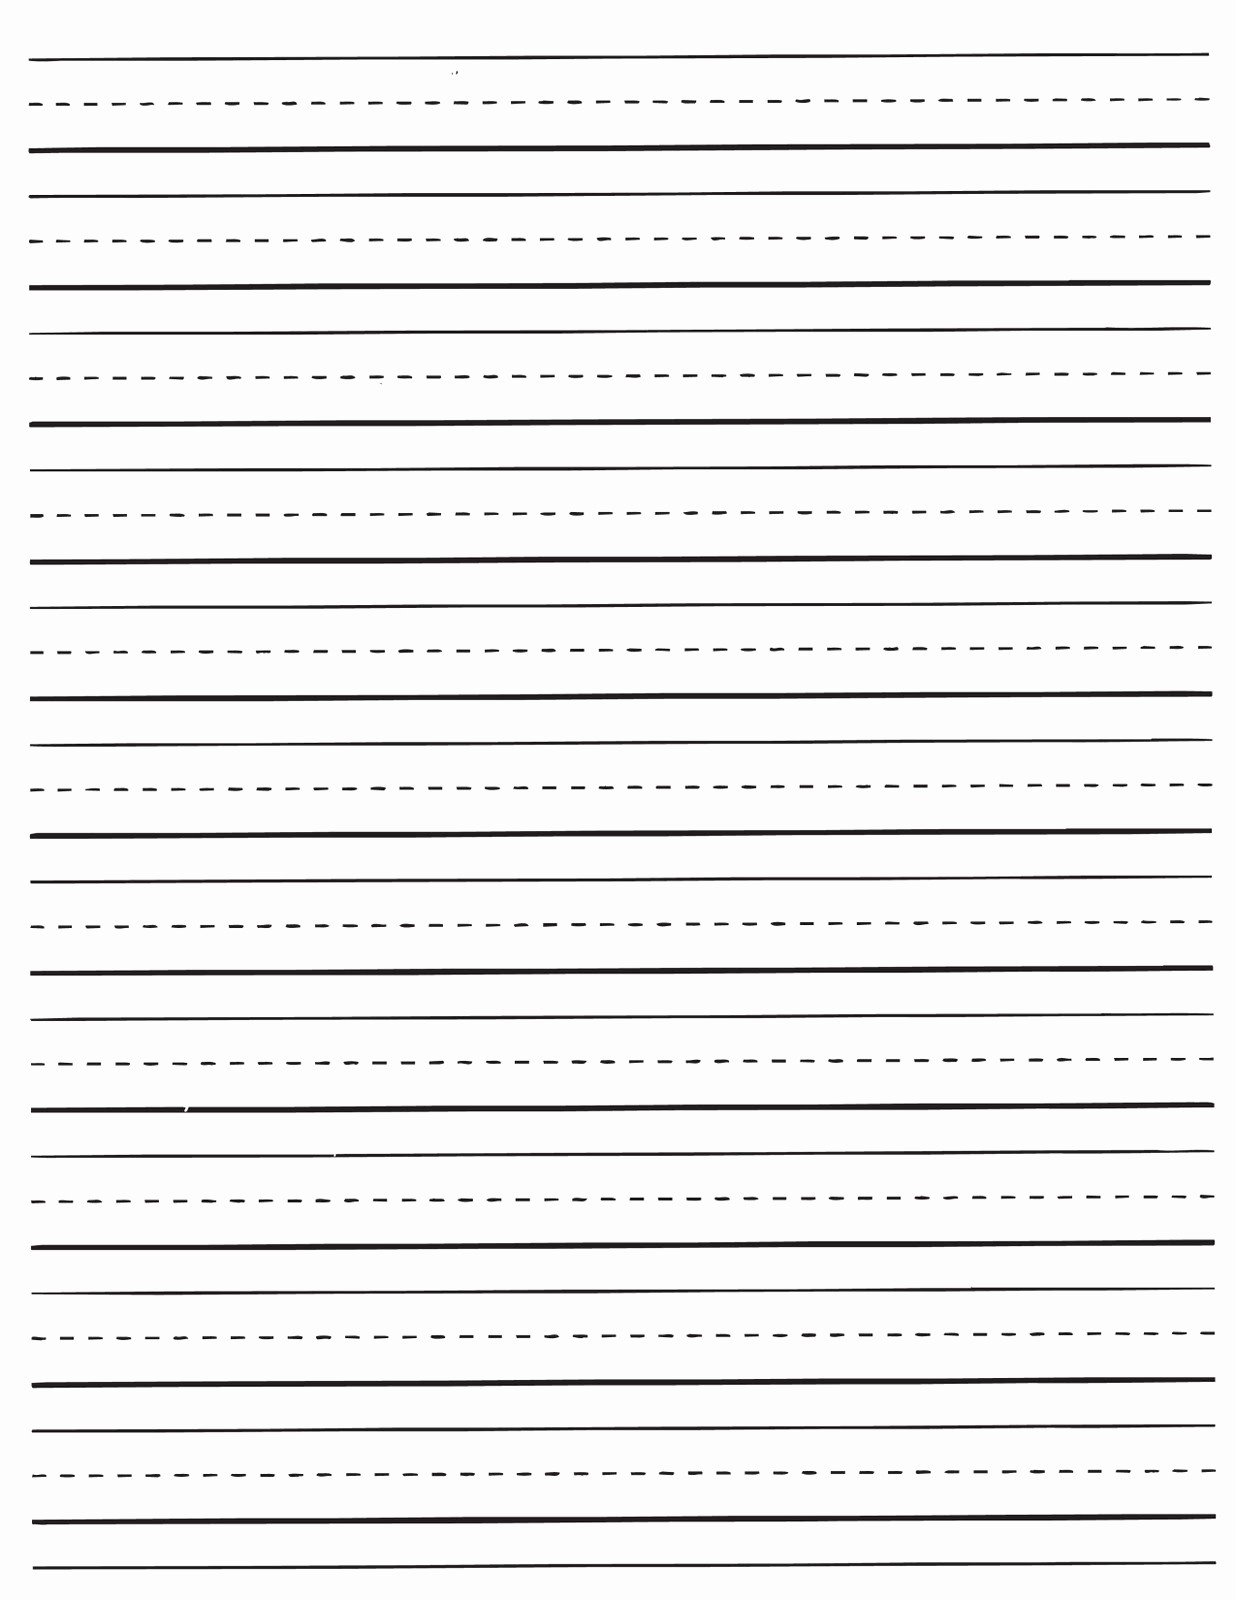 Lined Paper for Handwriting Practice Fresh Printable Dotted Lined Paper Printable Pages